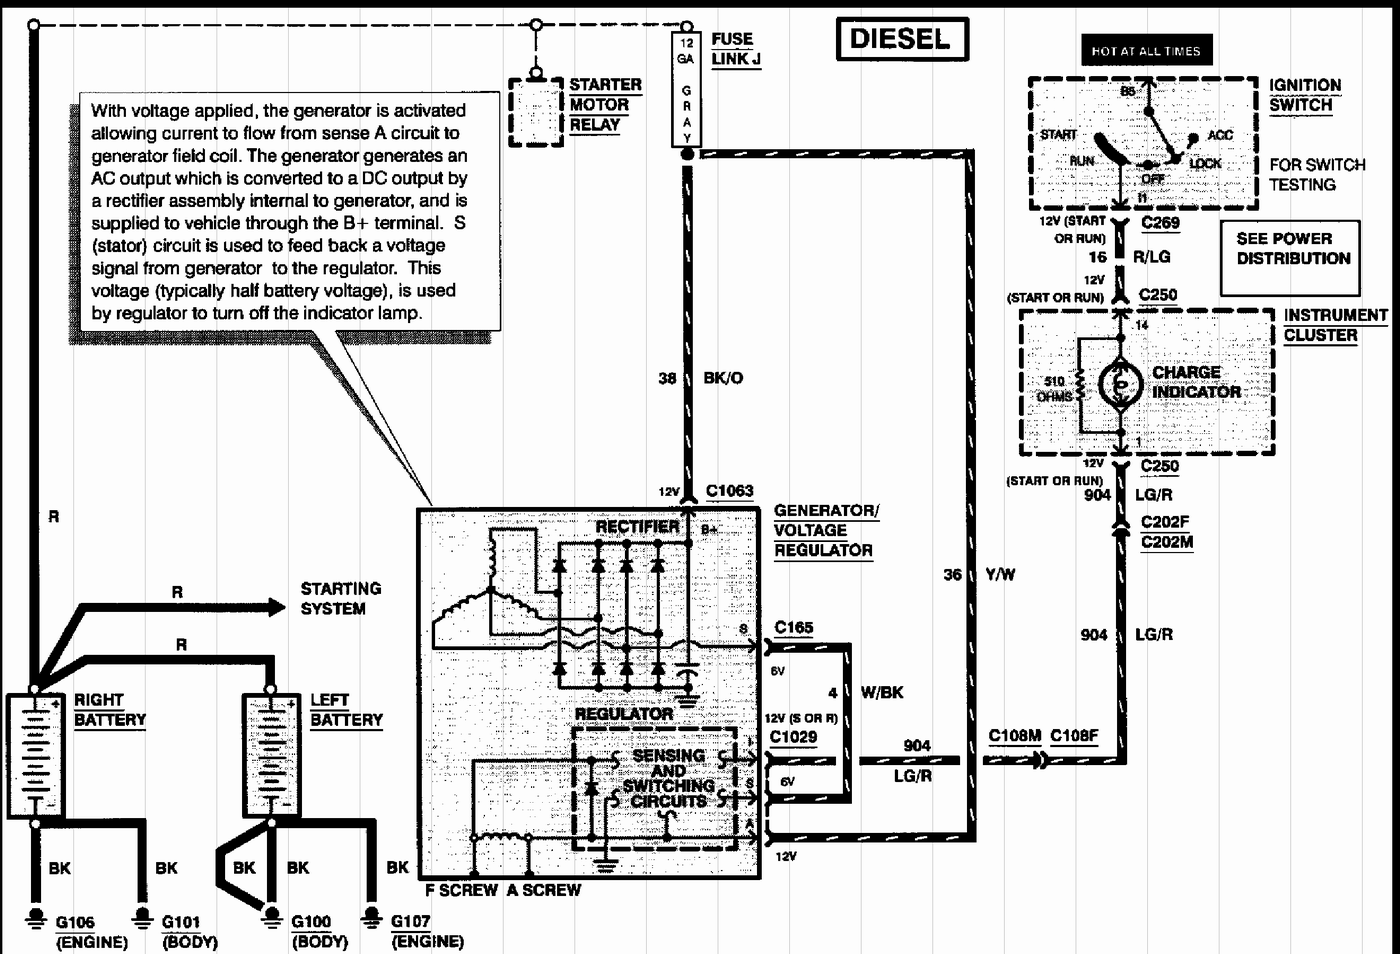 small resolution of wiring diagram for a 1997 ford f 250 wiring diagram list wiring diagram for 1997 ford f150 wiring diagram for 1997 ford f250